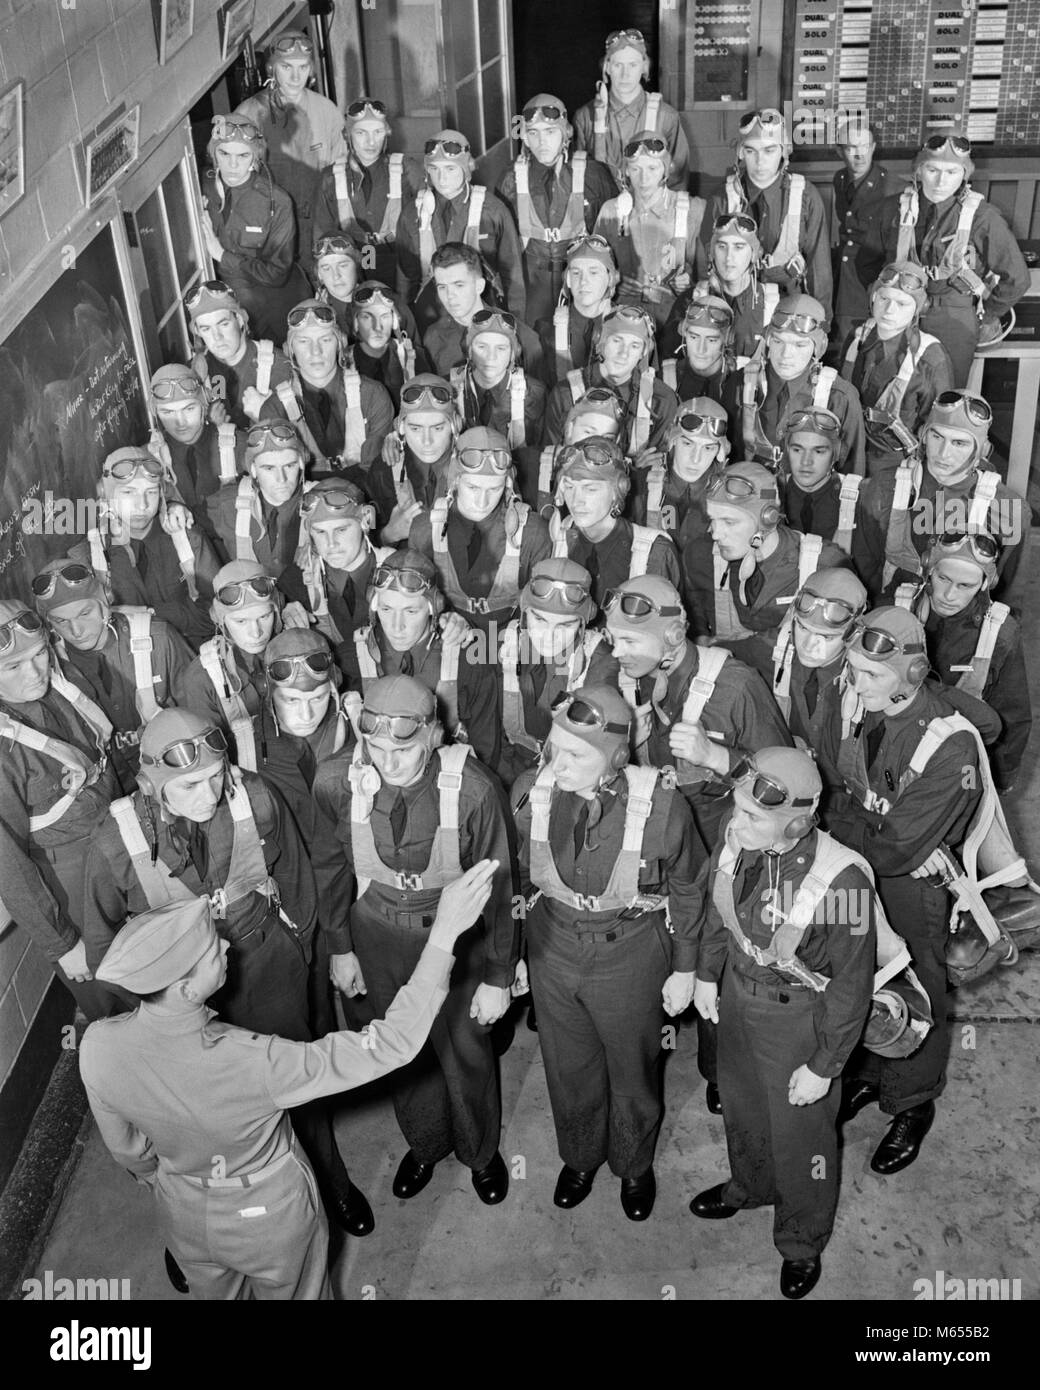 1940s NEW AVIATION OFFICERS GET LAST MINUTE PARACHUTE INSTRUCTION BEFORE TRAINING FLIGHT - a1603 HAR001 HARS STRENGTH - Stock Image